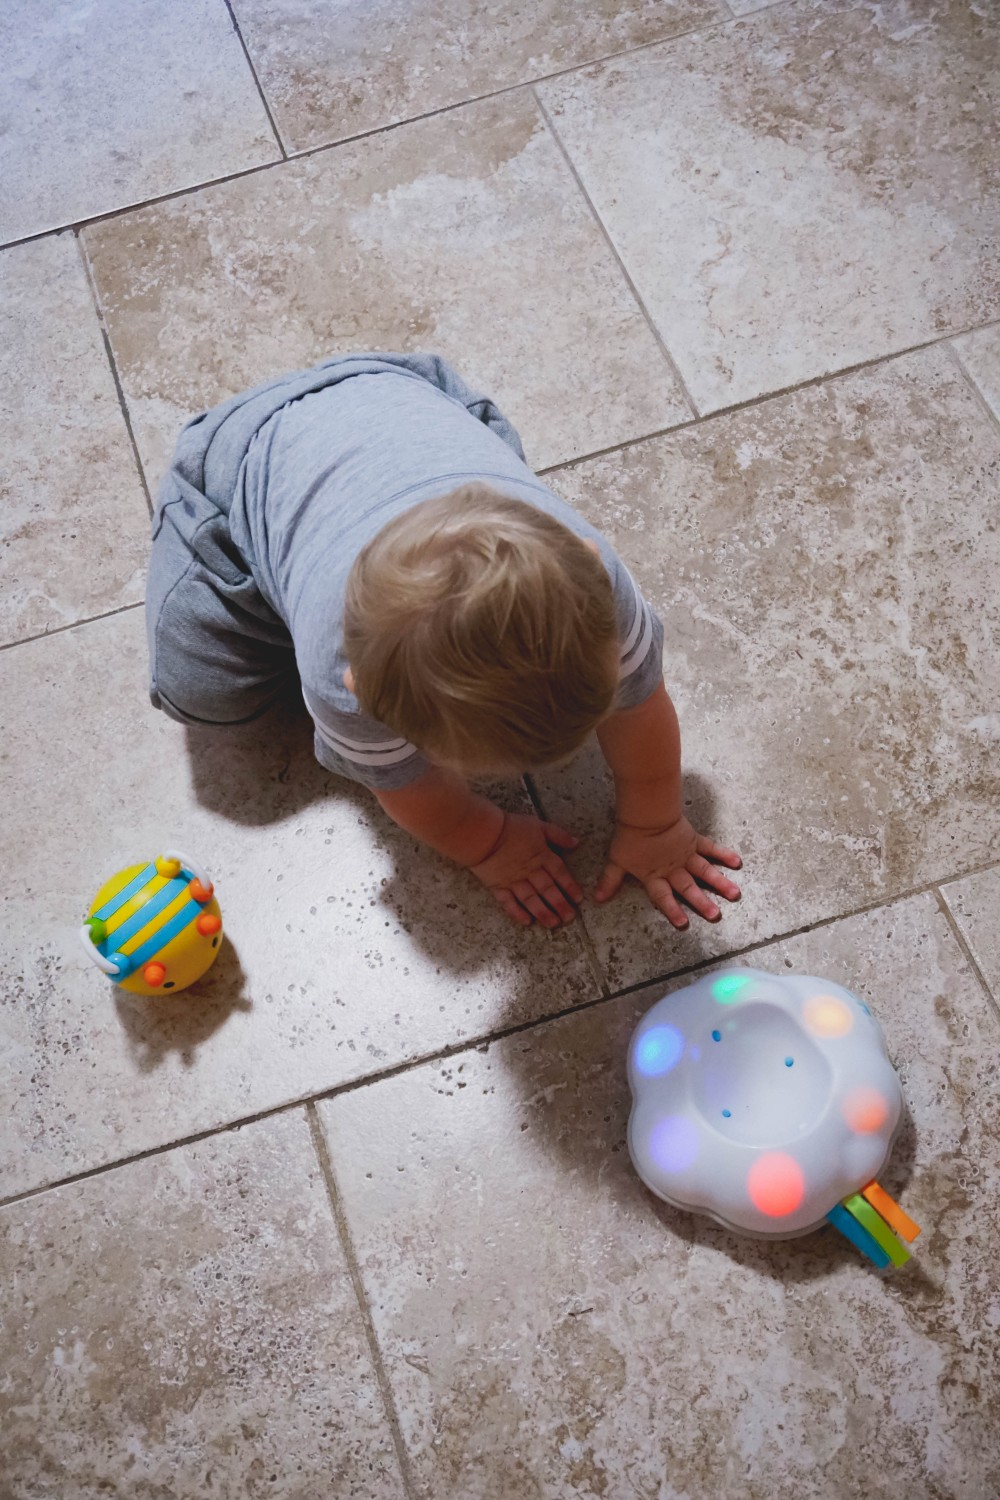 Playtime fun with Skip Hop-Skip Hop Floor Mats-Activity Gym-Mason's 10 Month Update-Motherhood-Have Need Want at Home 3